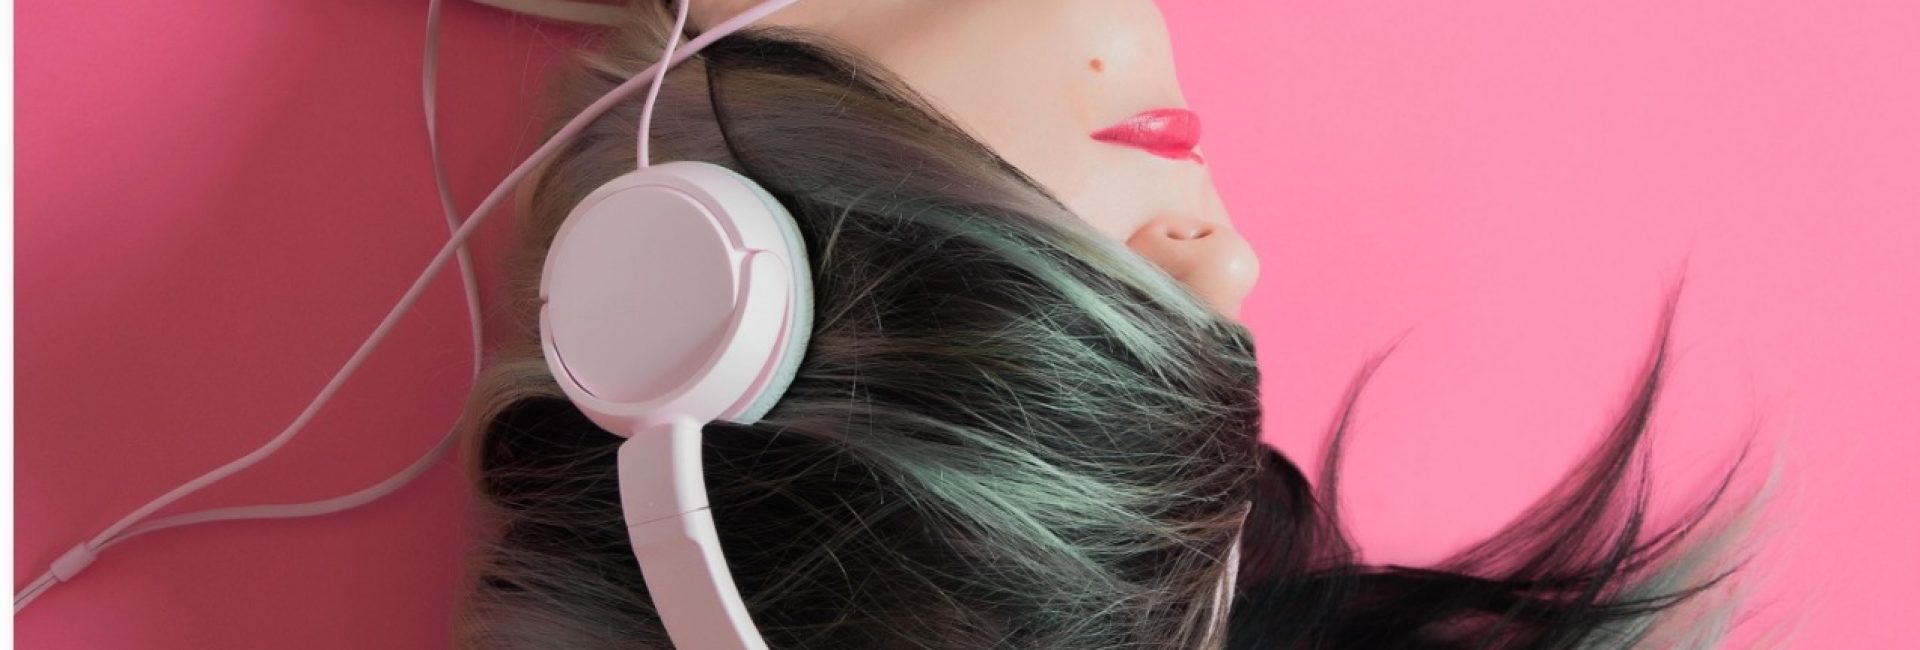 binaural-beats-headphones-pink_edited